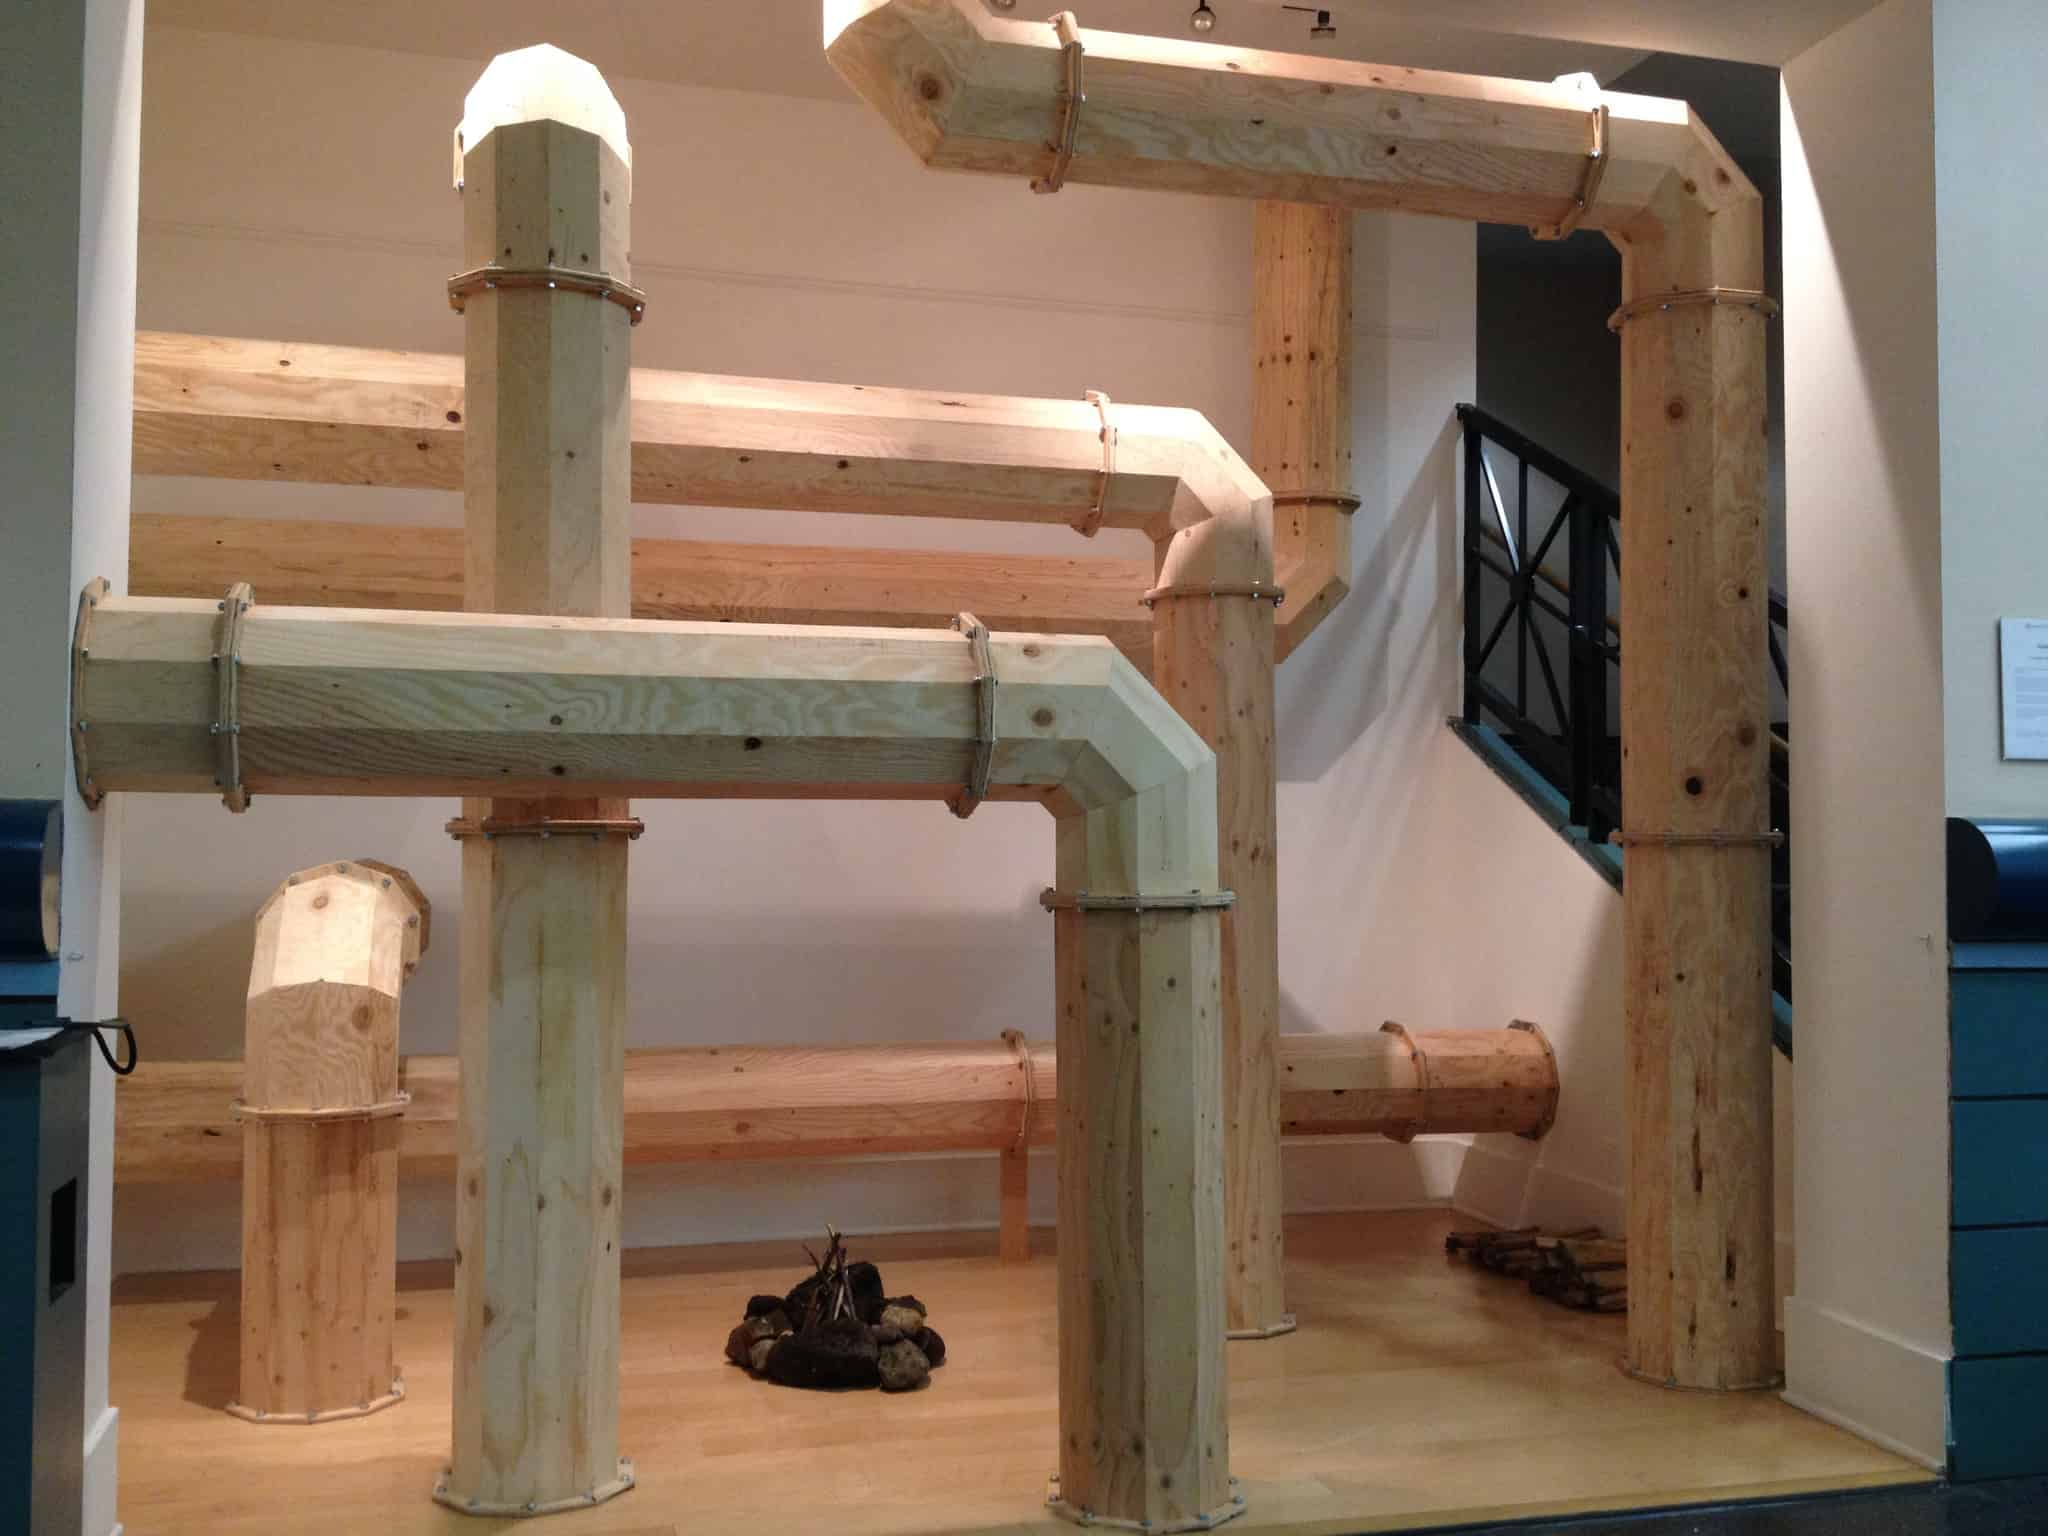 """Alex Luboff's installation """"Pipelines"""" will be on exhibit at Portland Building lobby through December 9."""